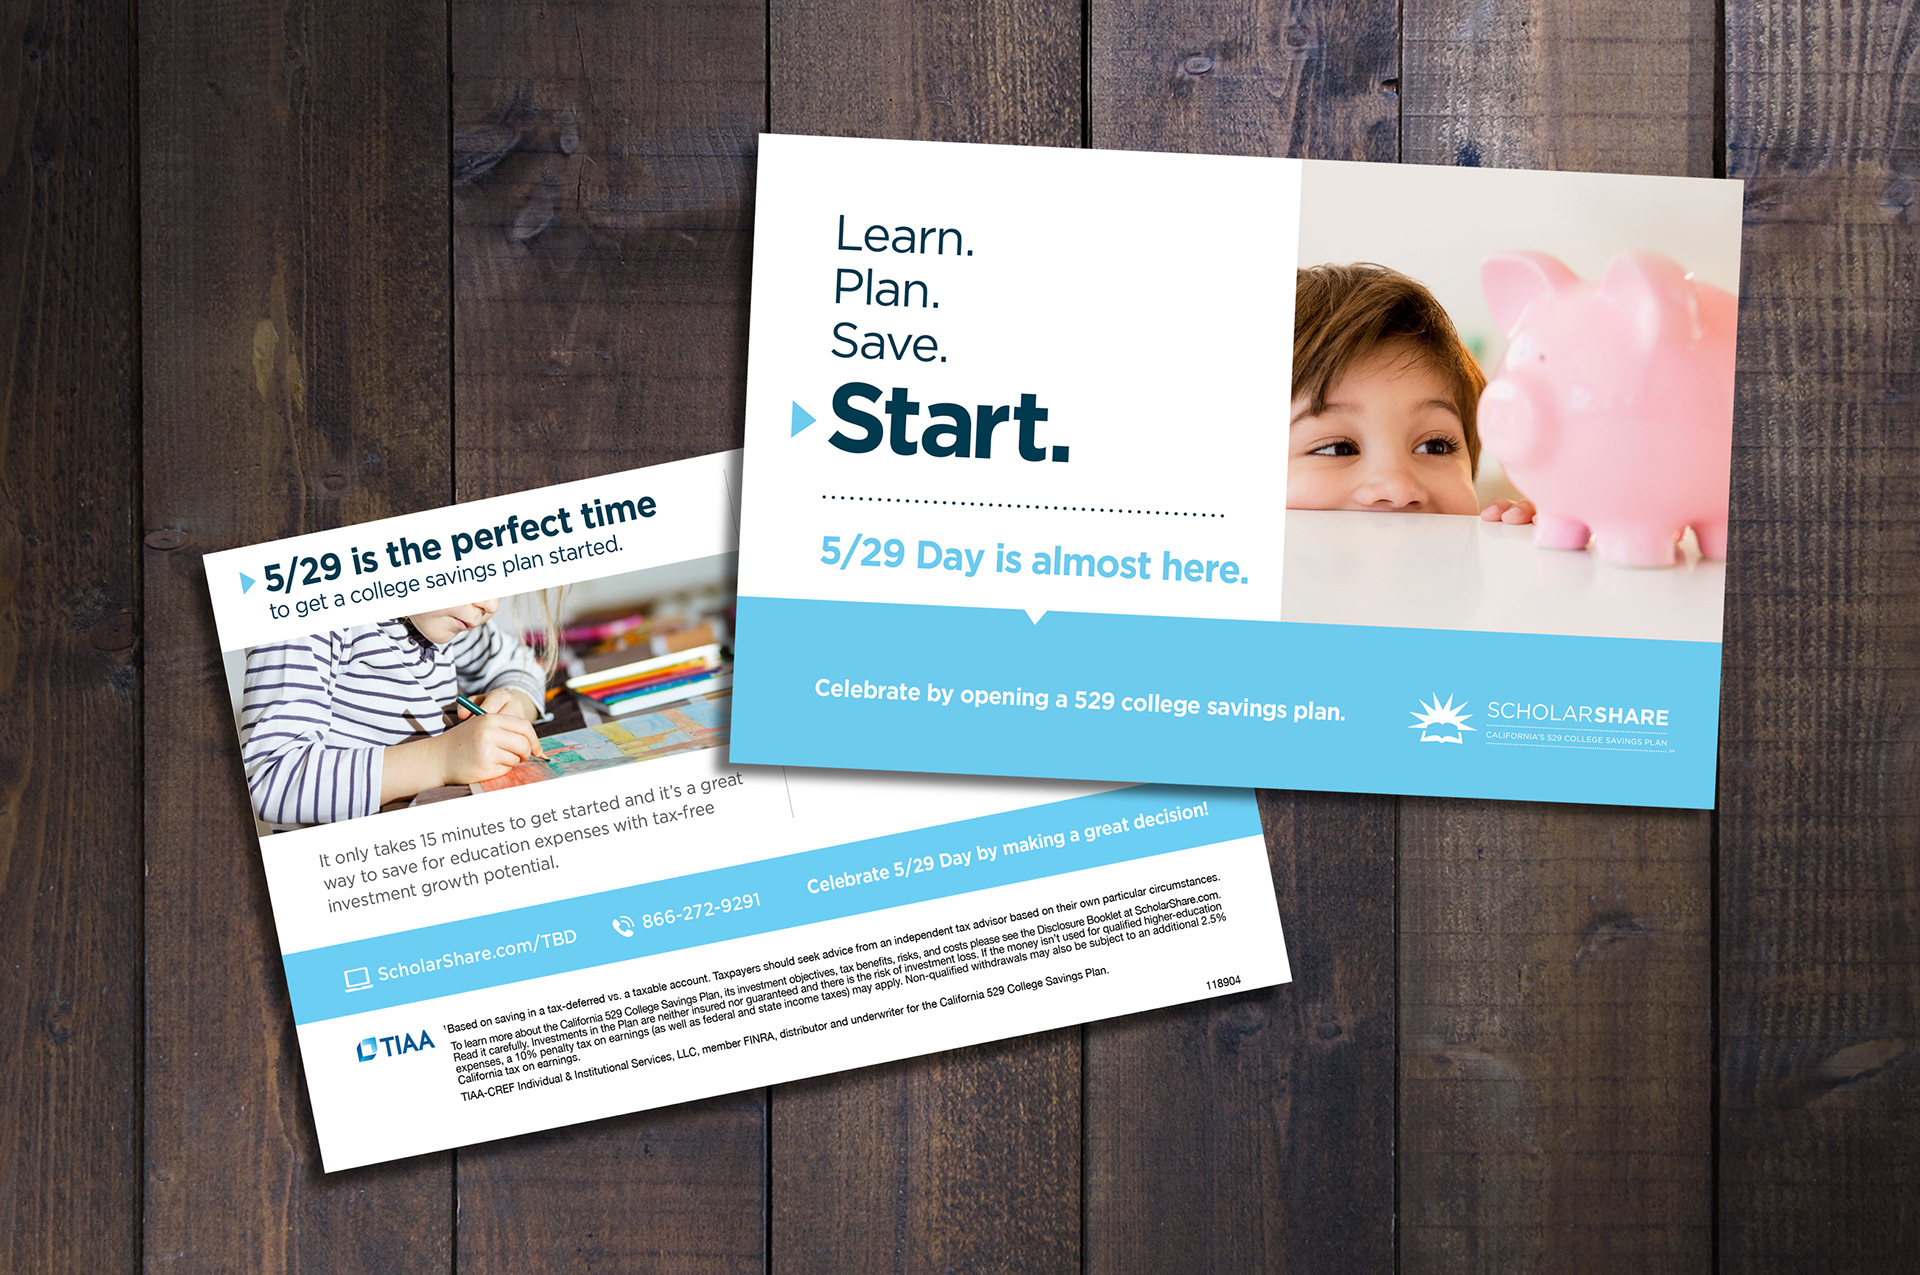 529 college savings plan direct - Using Both Targeted Banners And Direct Mail This Effort Focuses On Upcoming May 29 Or 529 Day As A Motivator To Start Saving For Your Kids Education